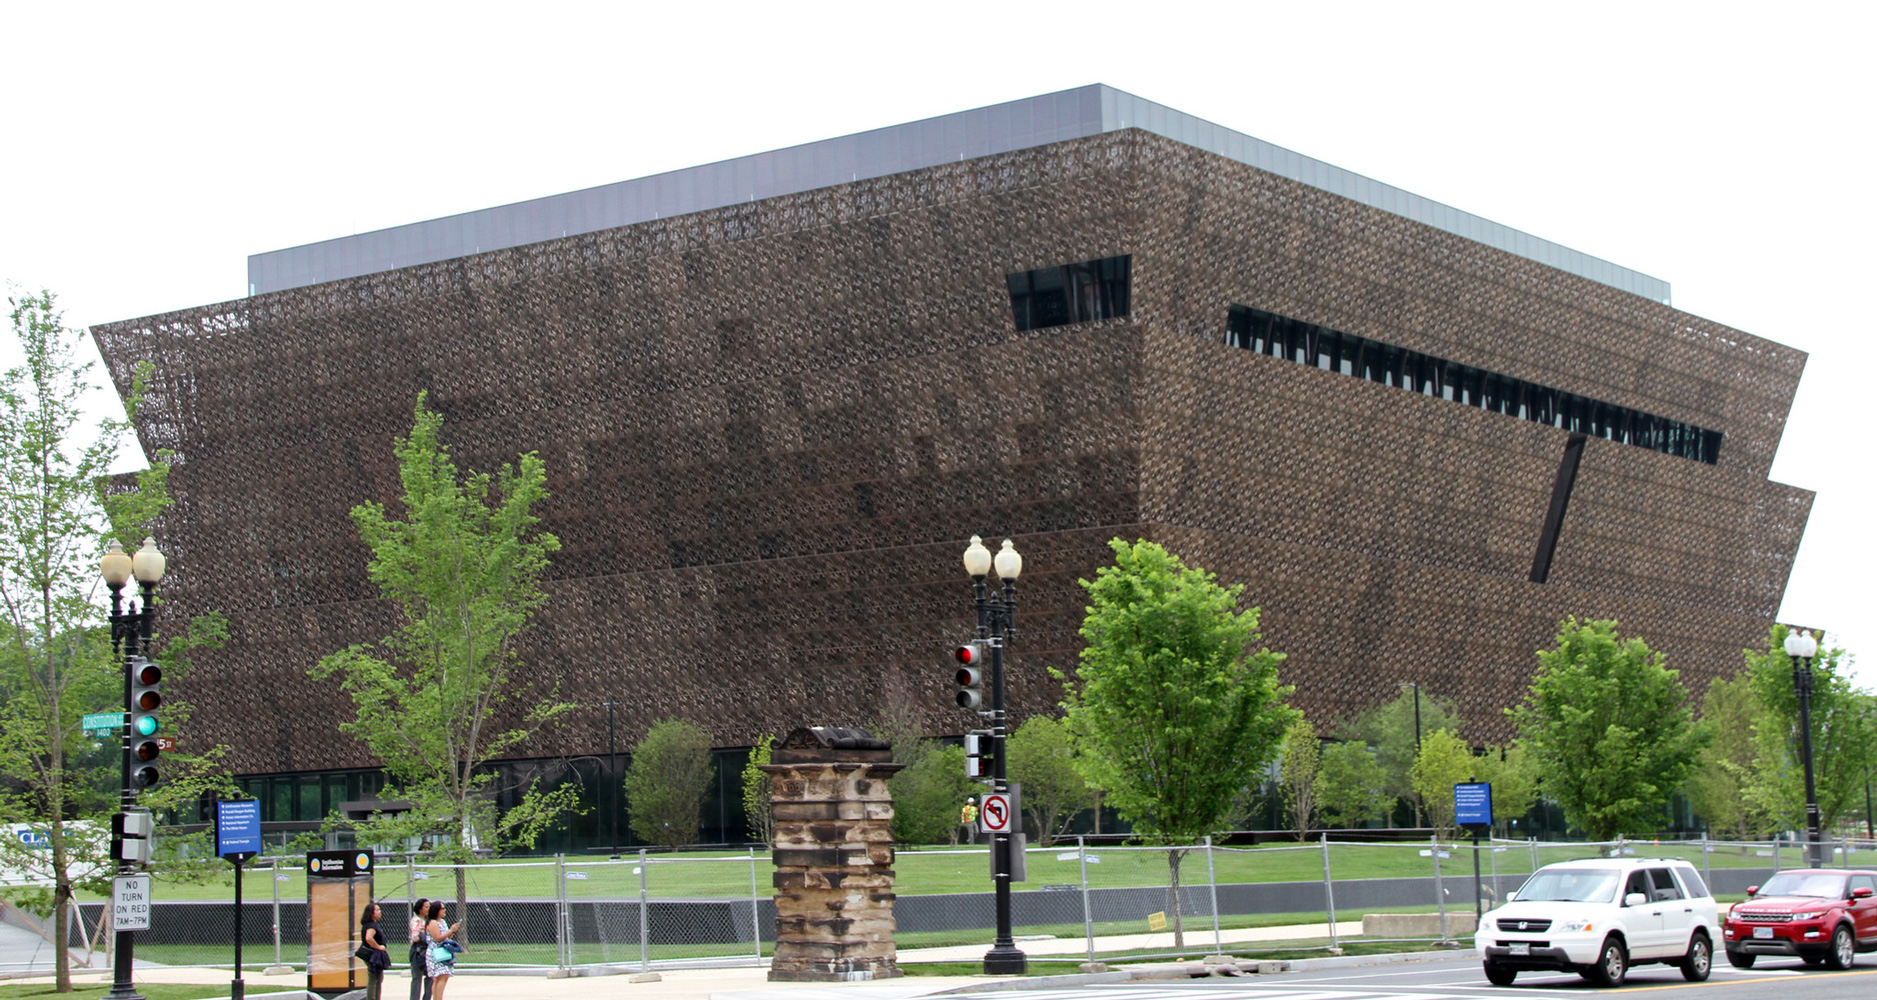 Image: National Museum of African American History and Culture